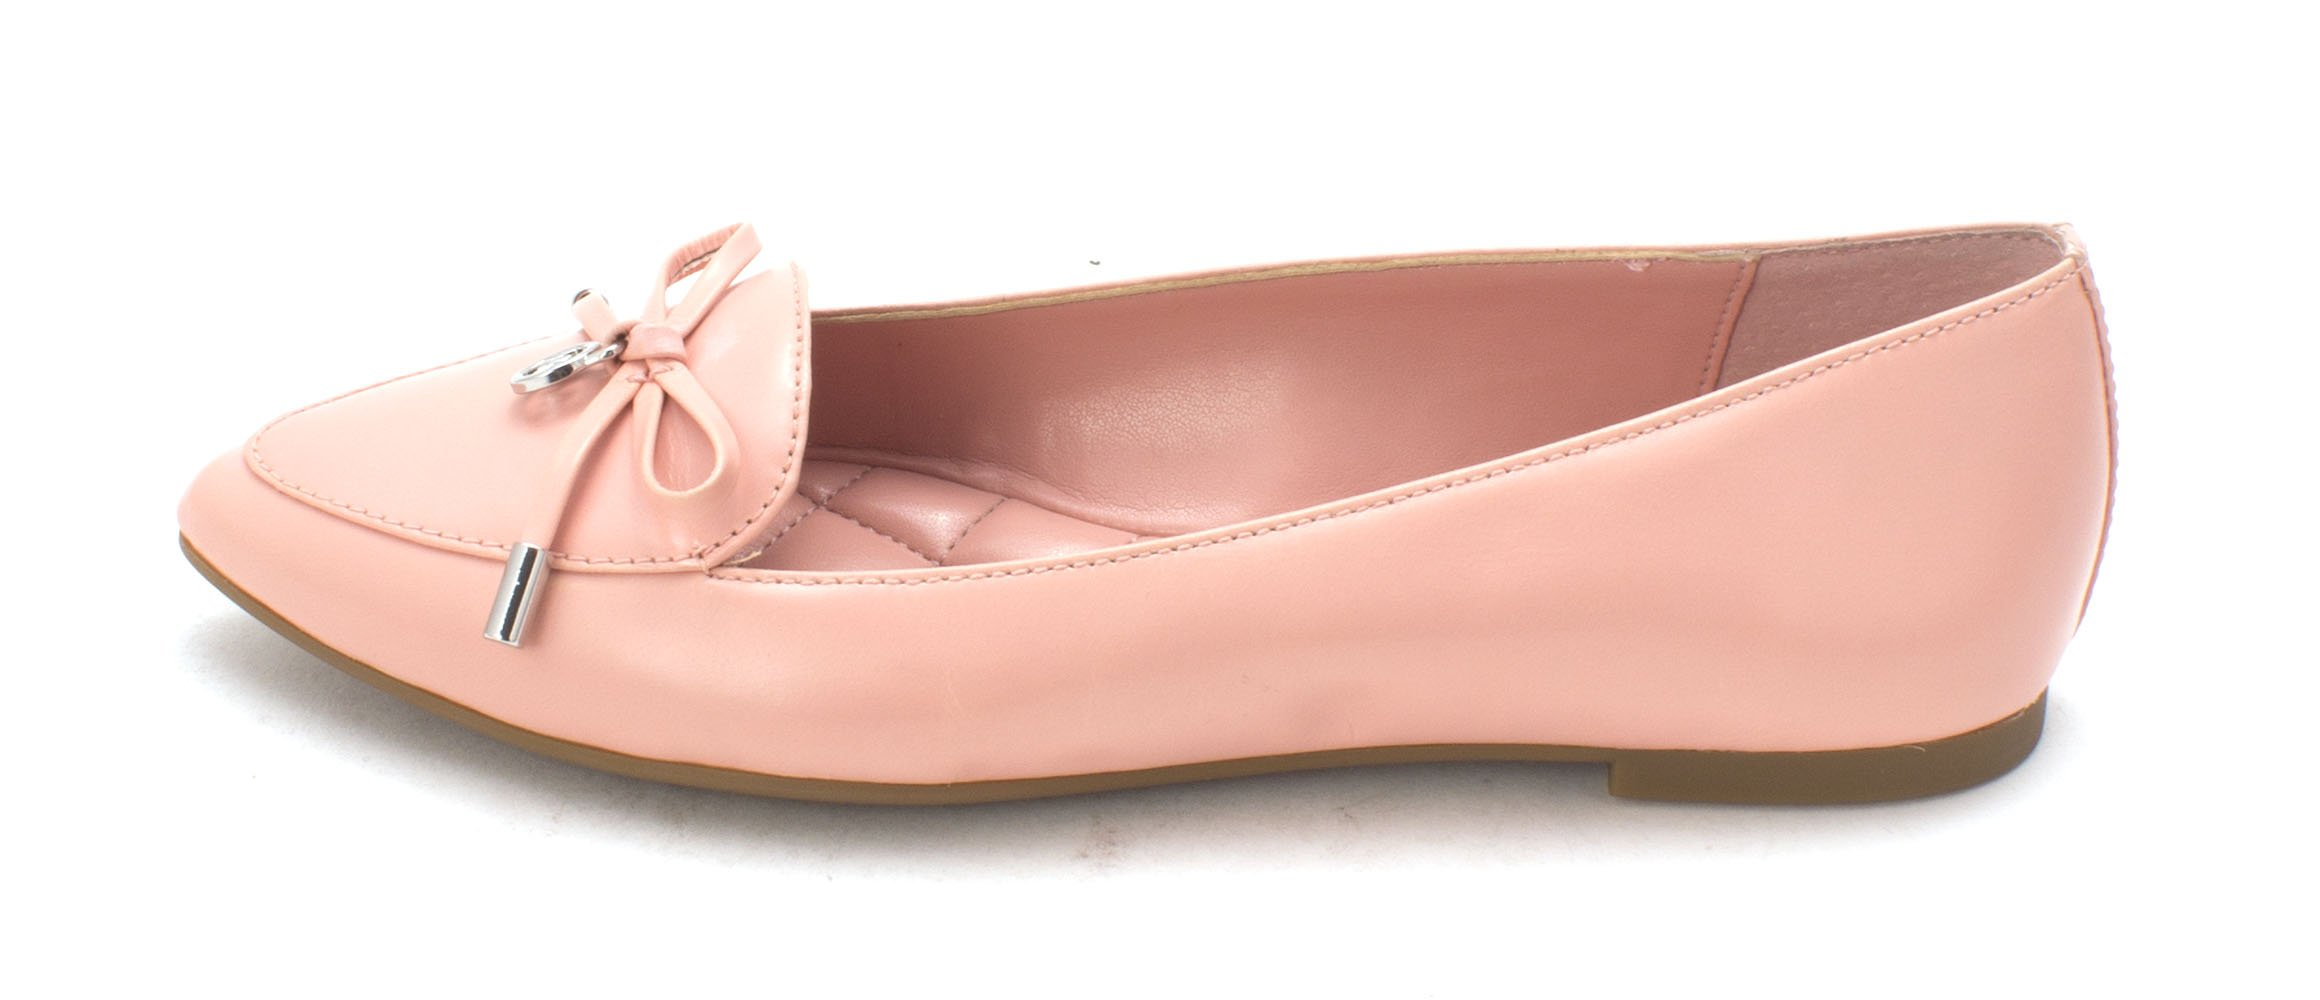 MICHAEL Michael Kors Womens Nancy Pointed Toe Leather Slide Flats, Pink, Size 5 by MICHAEL Michael Kors